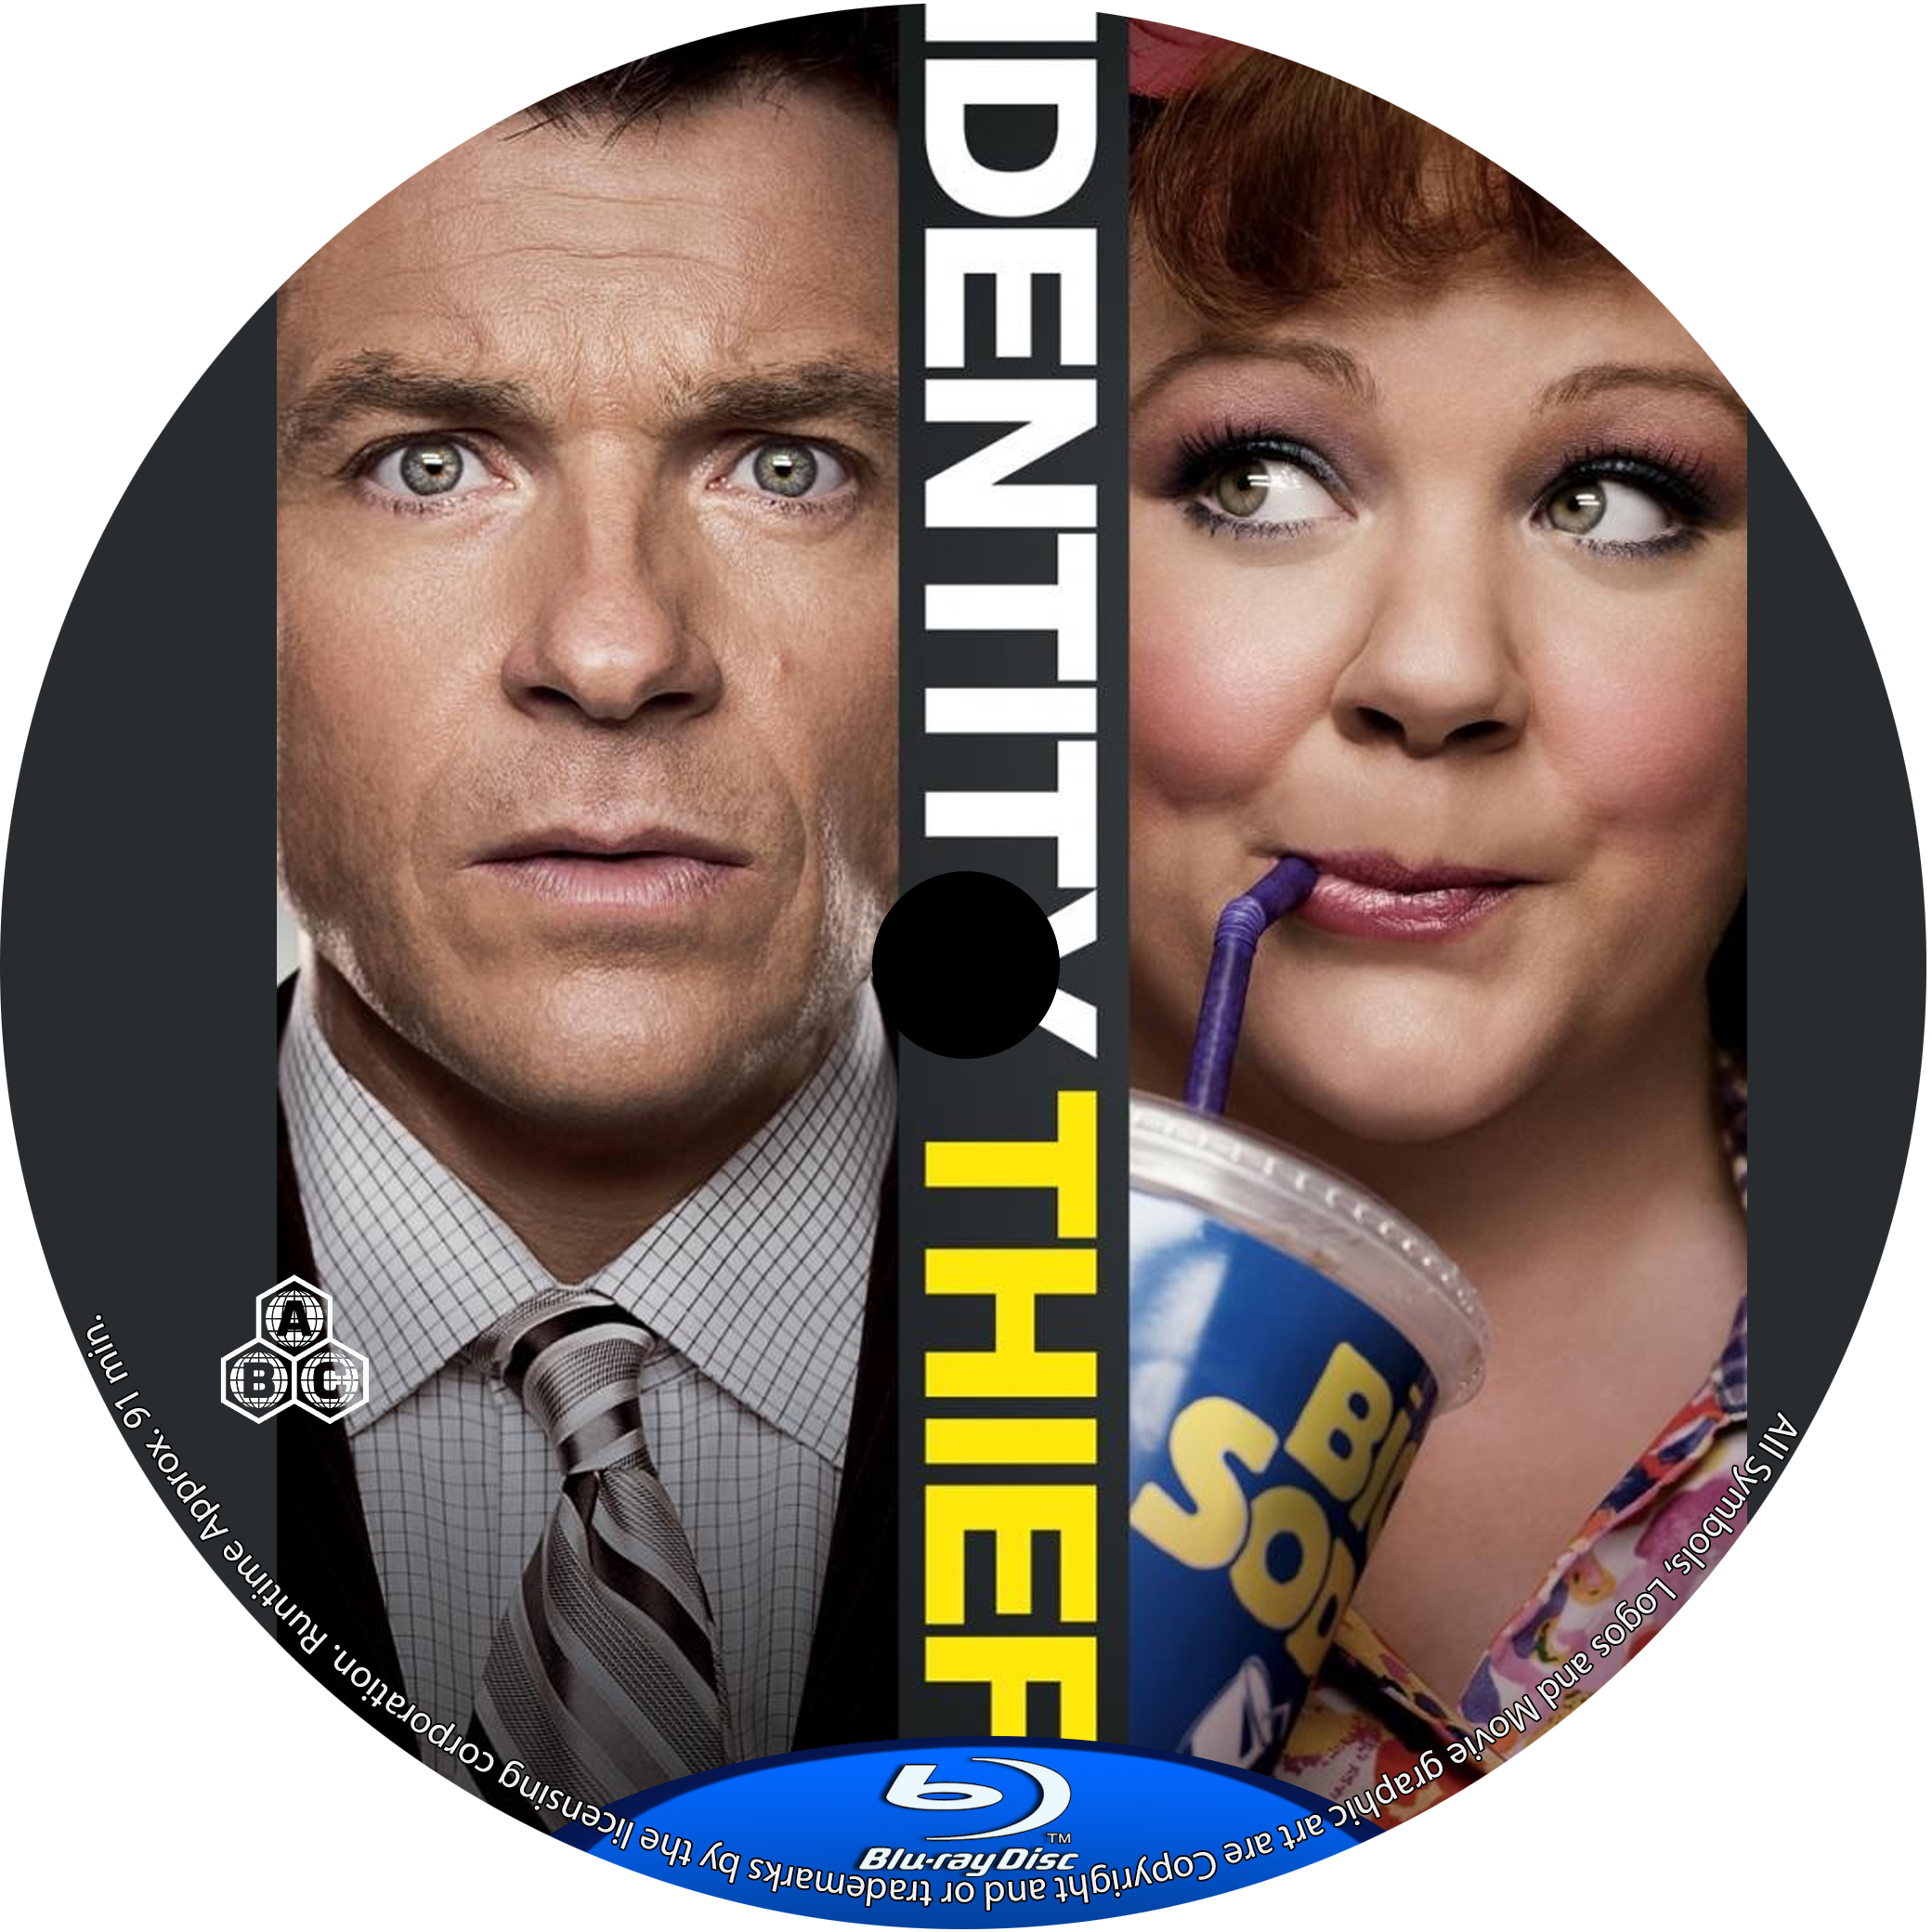 Covers Box Sk Identity Thief 2013 High Quality Dvd Blueray Movie